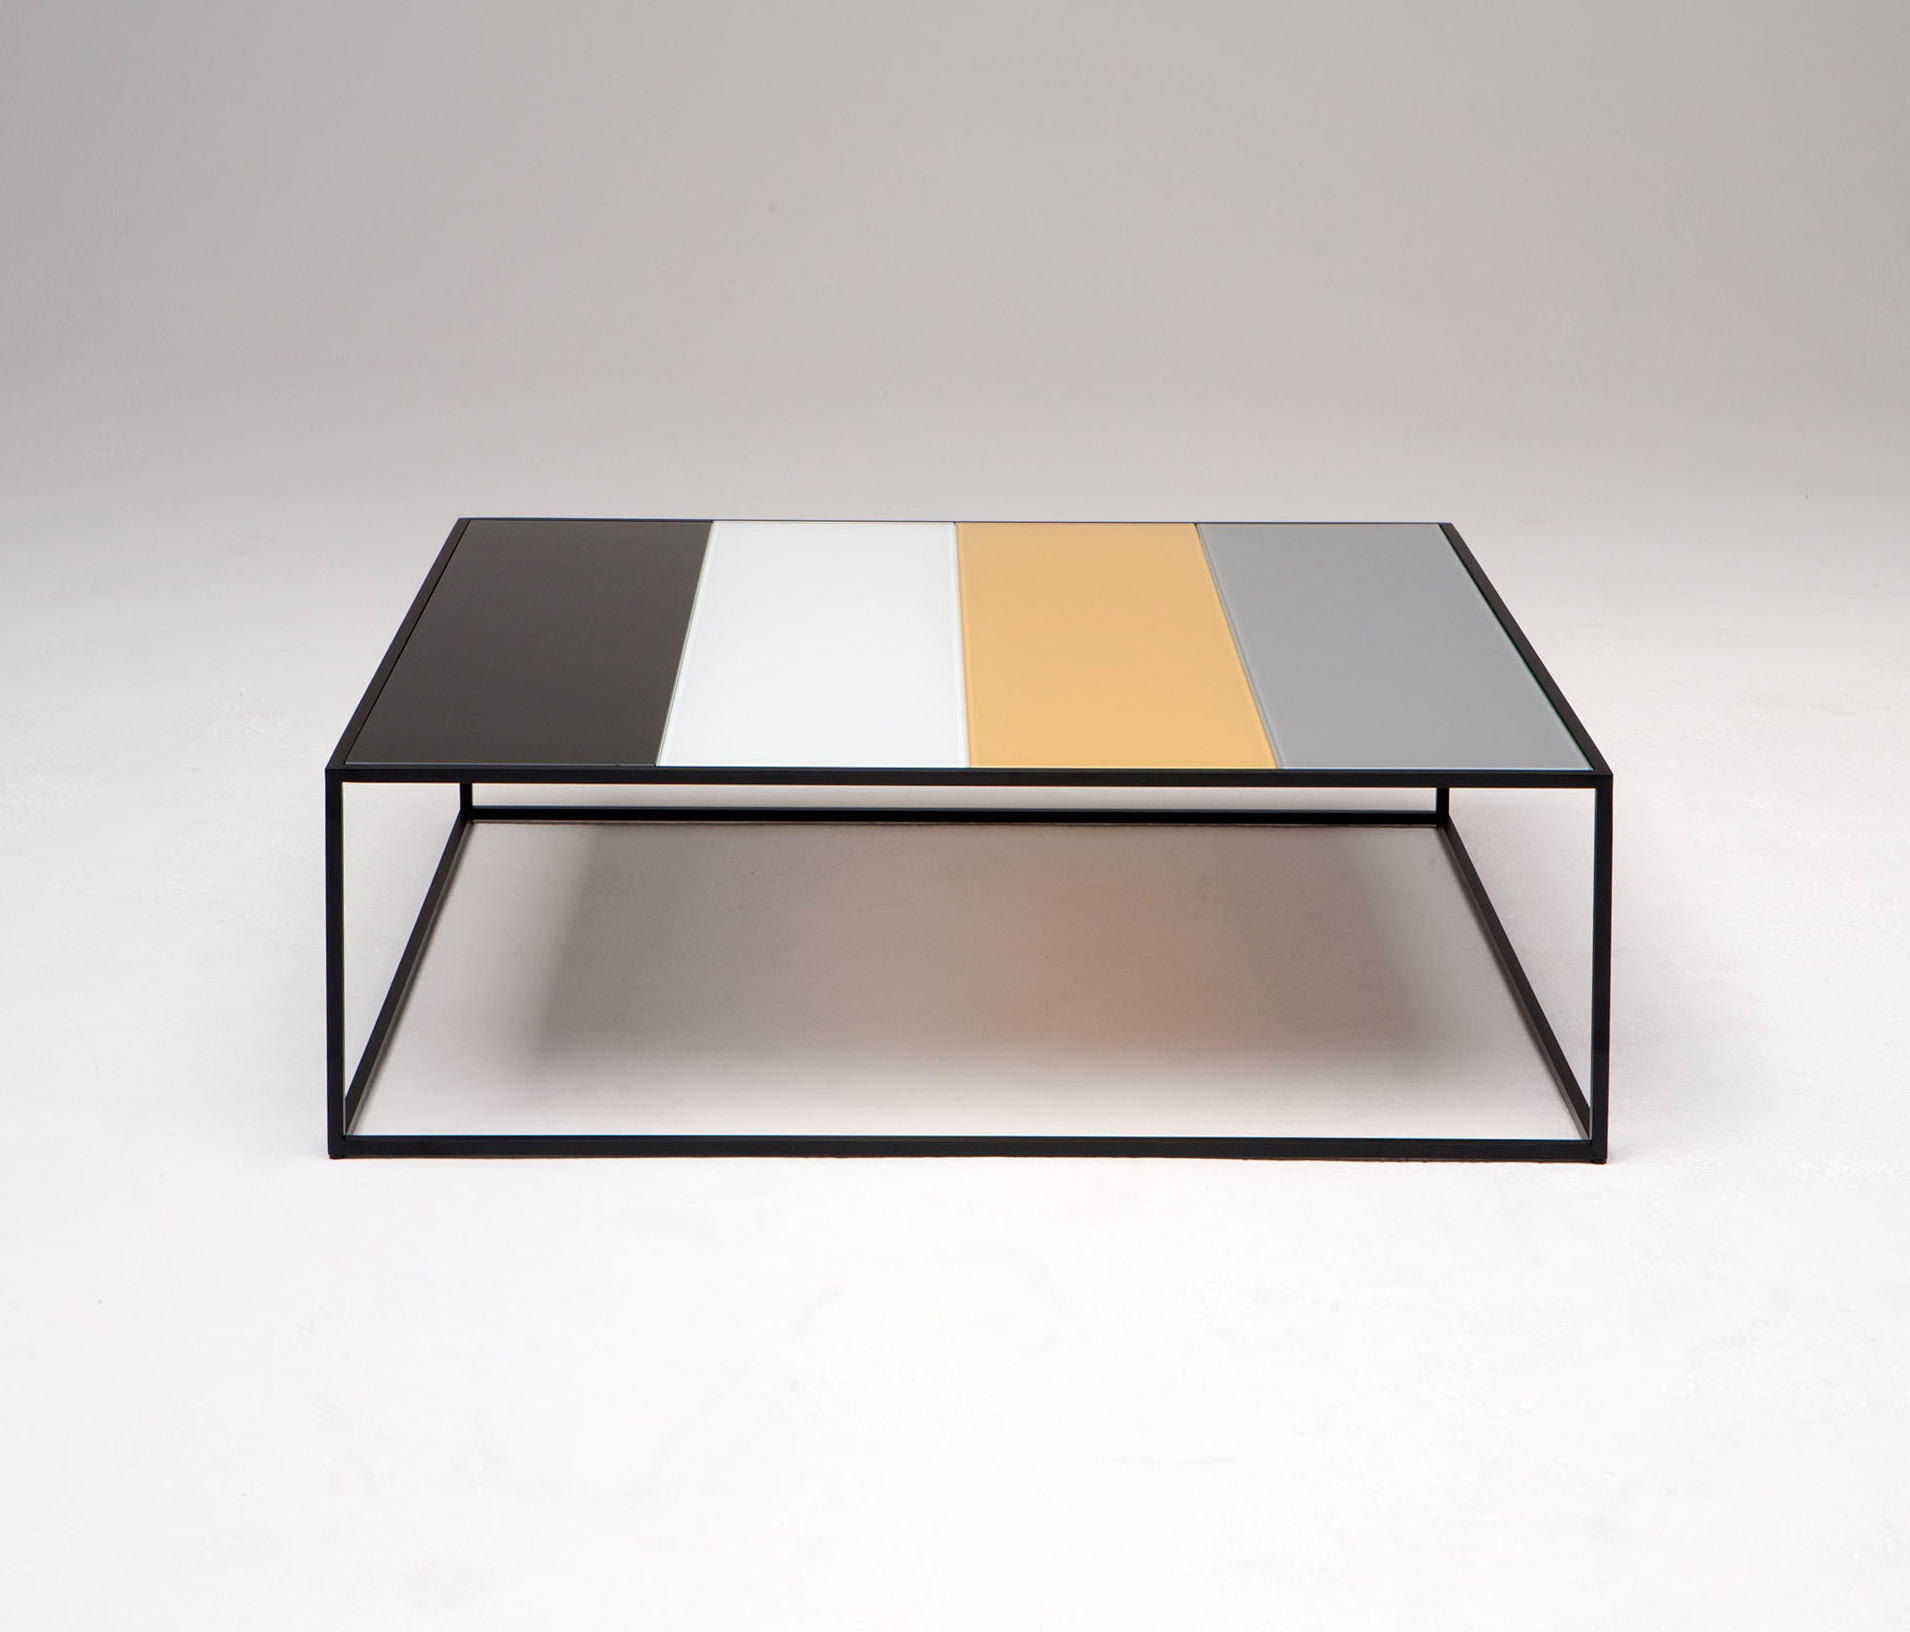 keys coffee table - coffee tables from phase design | architonic